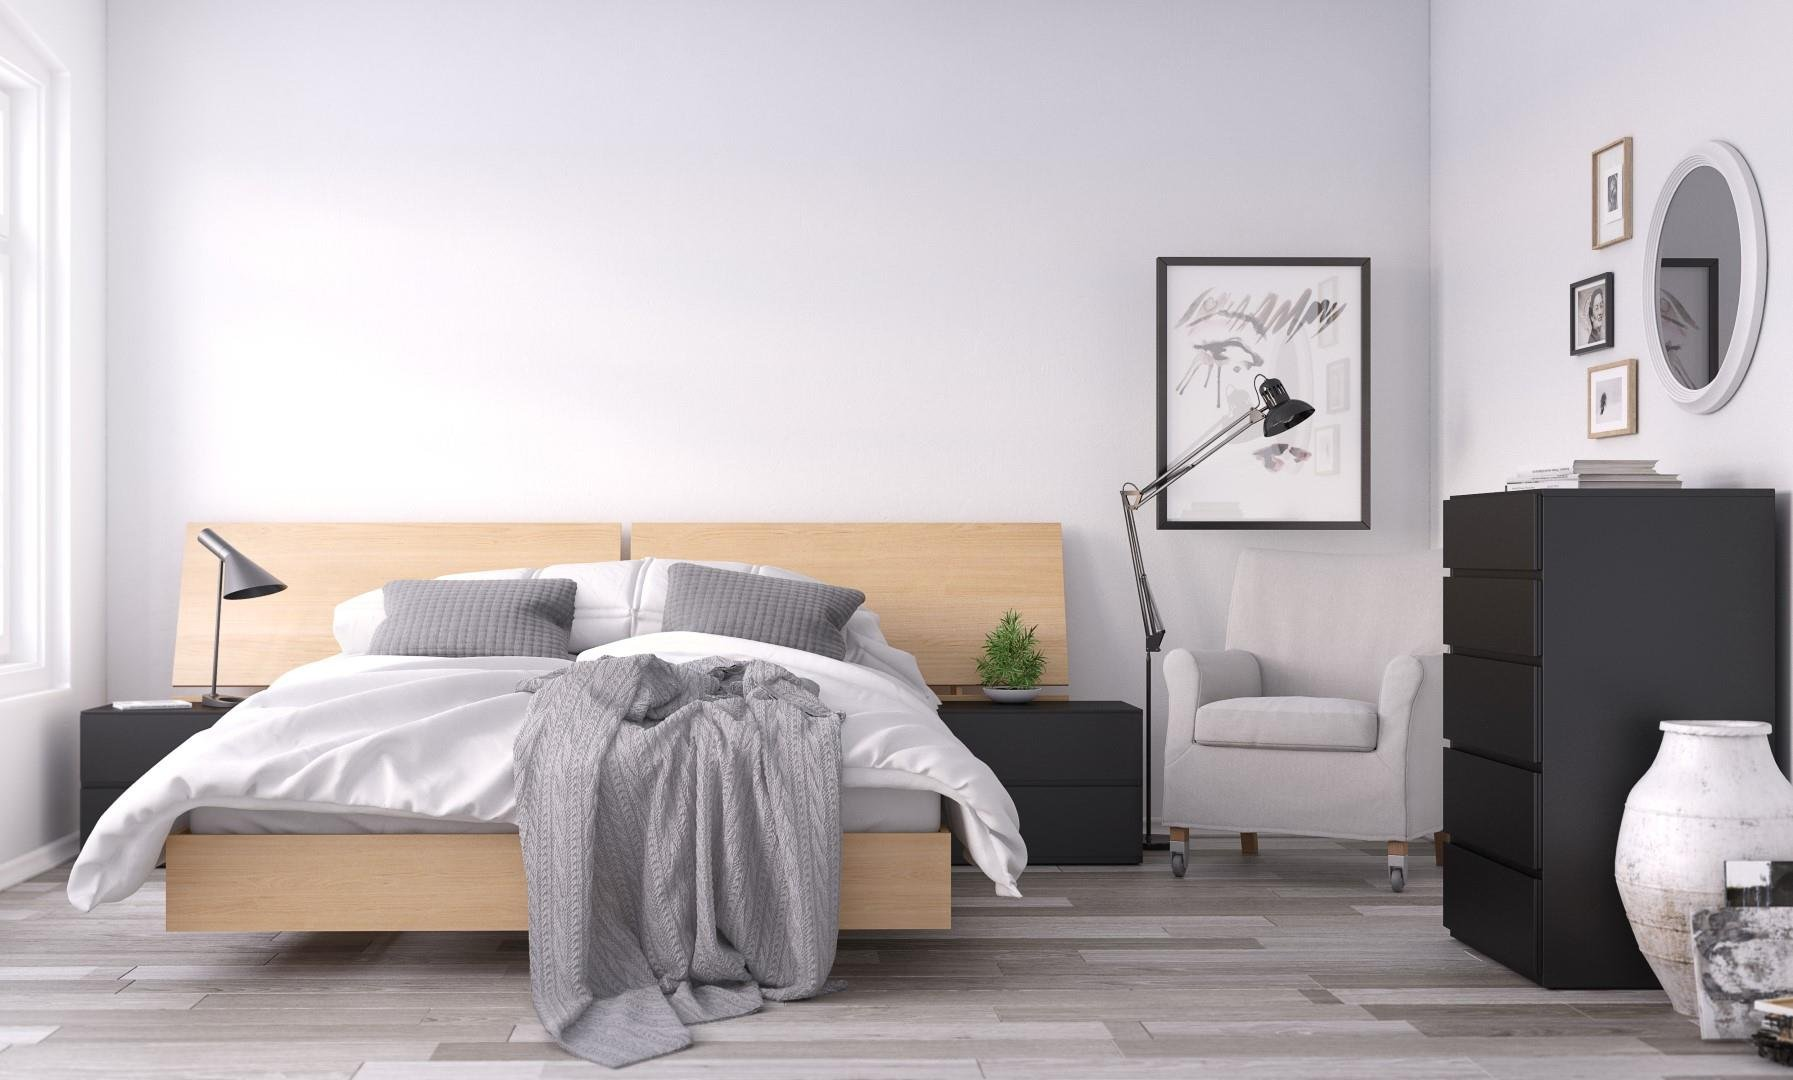 Muse 5 Piece Queen Size Bedroom Set Black and Natural Maple